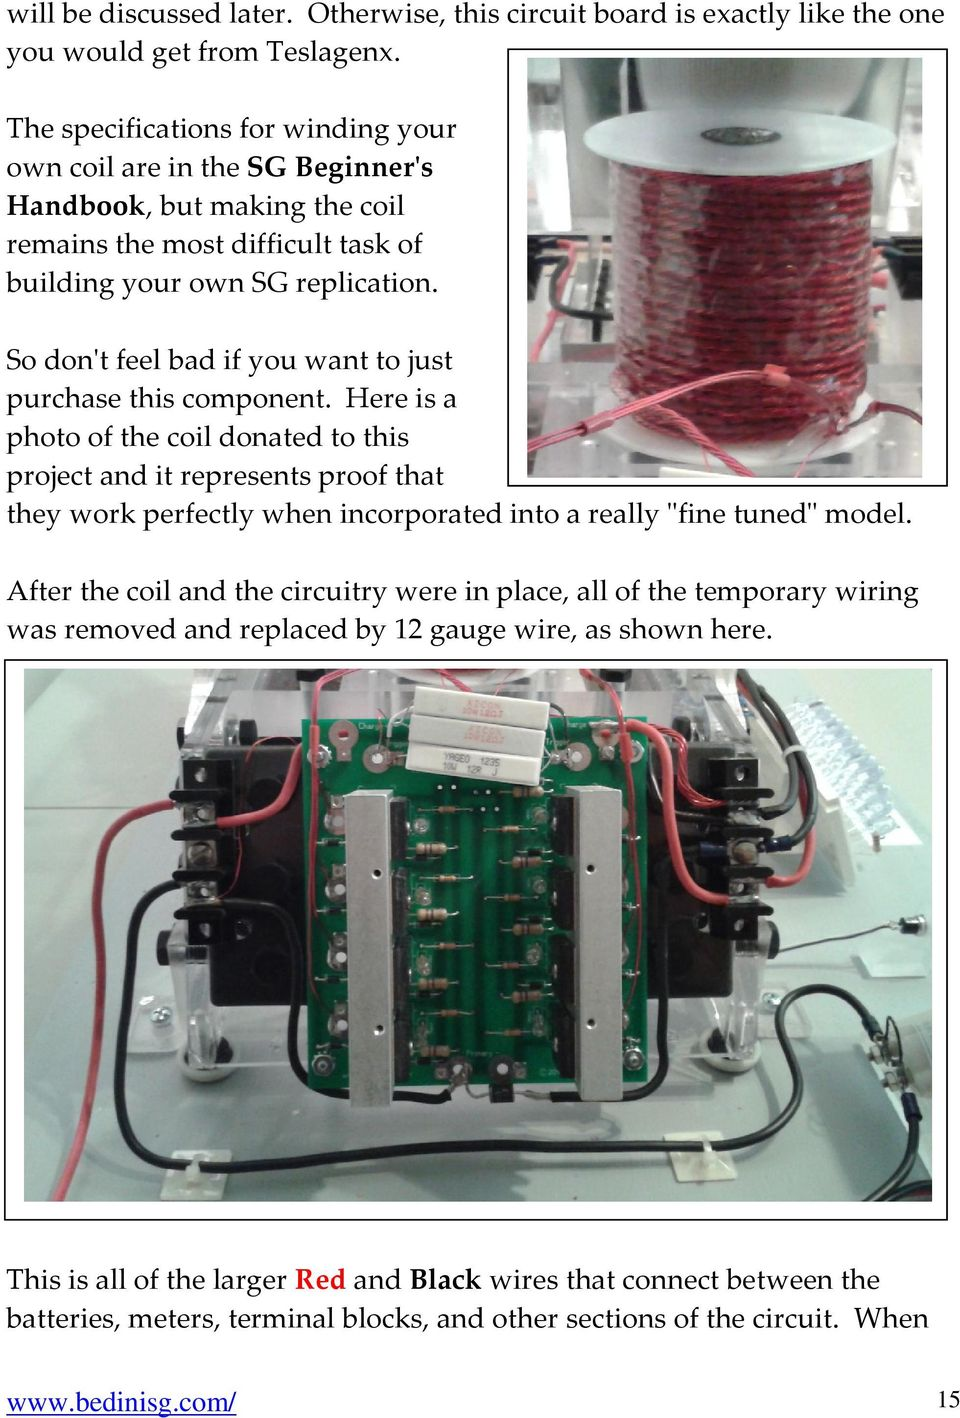 Bedini Sg The Complete Advanced Handbook Written By Peter Homemade 100 Hp Motor Controller For An Electric Car Electronicslab So Dont Feel Bad If You Want To Just Purchase This Component